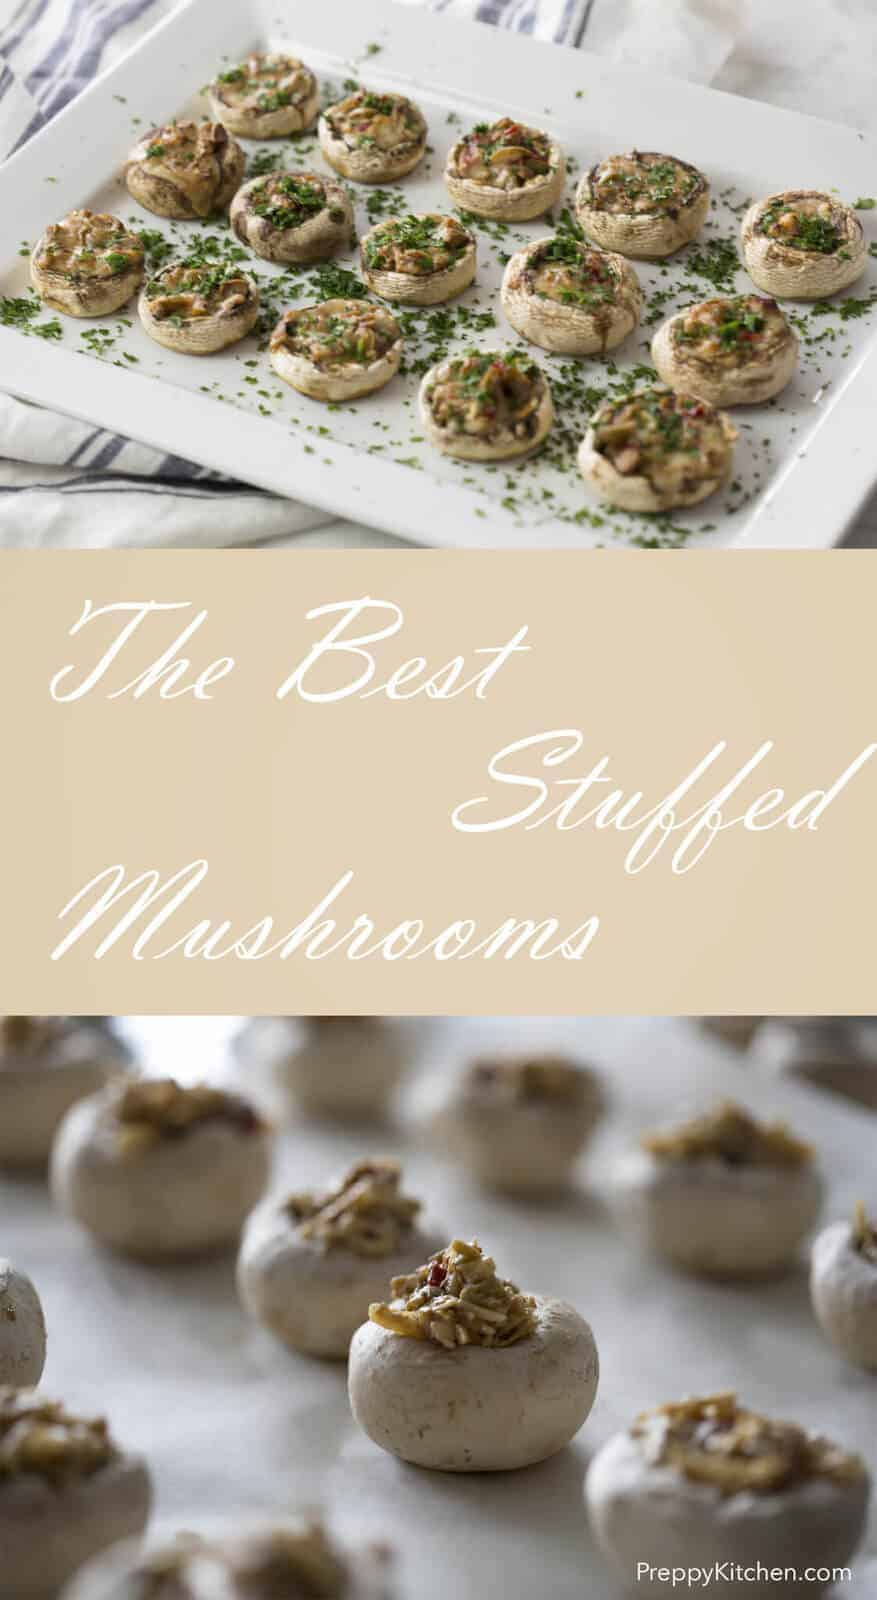 A classic appetizer you can whip up in a few minutes. These mushroom caps are filled olives, gruyere, Worcestershire and topped with parsley.